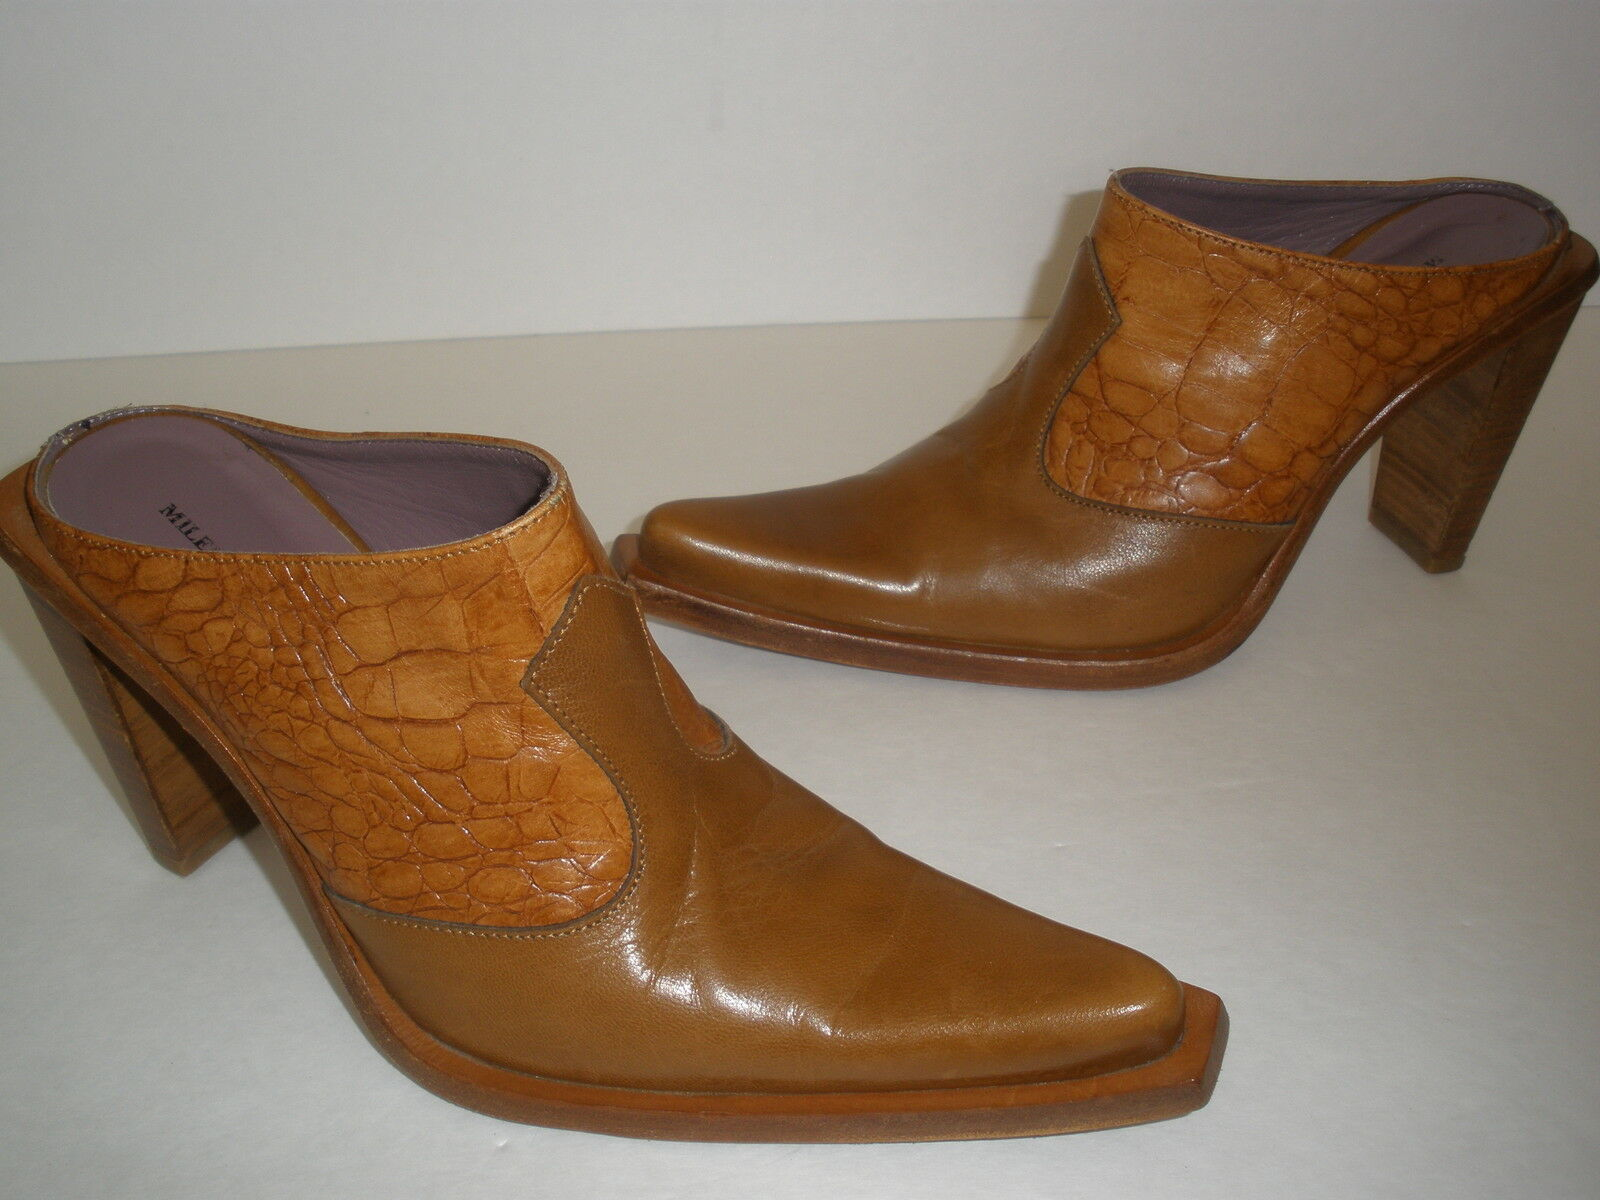 prezzo basso GORGEOUS MILENA ALL  LEATHER LEATHER LEATHER WESTERN HEELS  4  Dimensione US 7  SEXY  MADE IN ITALY  disponibile